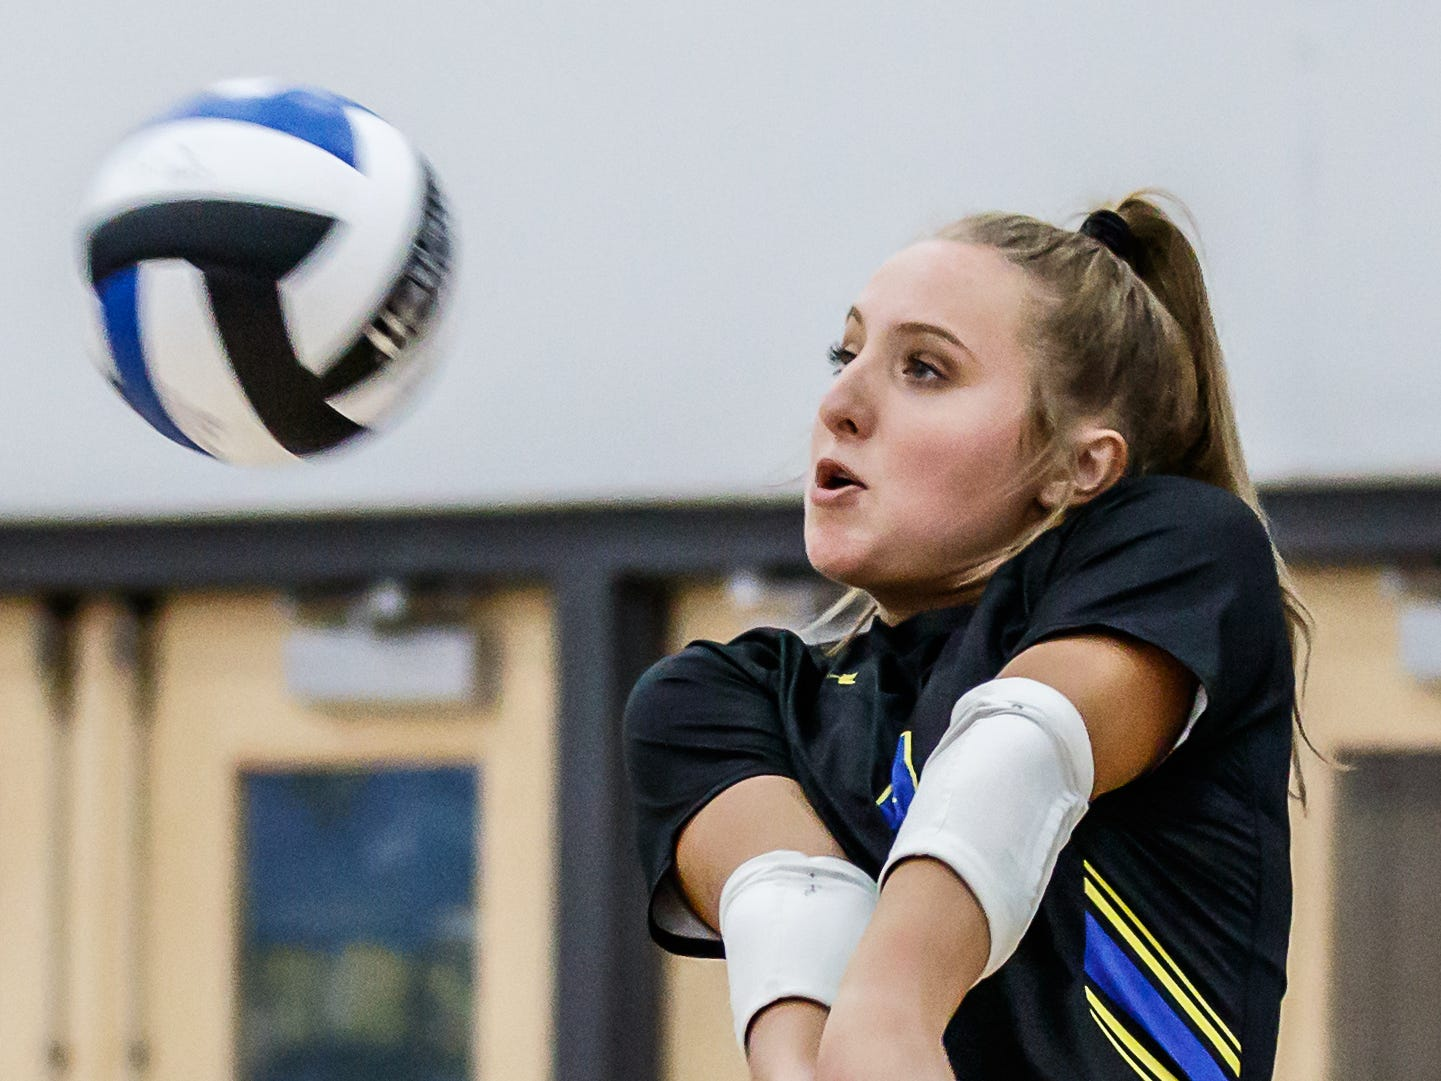 Mukwonago senior Hannah Powers (4) returns a serve during the match at home against Catholic Memorial on Tuesday, Sept. 11, 2018.